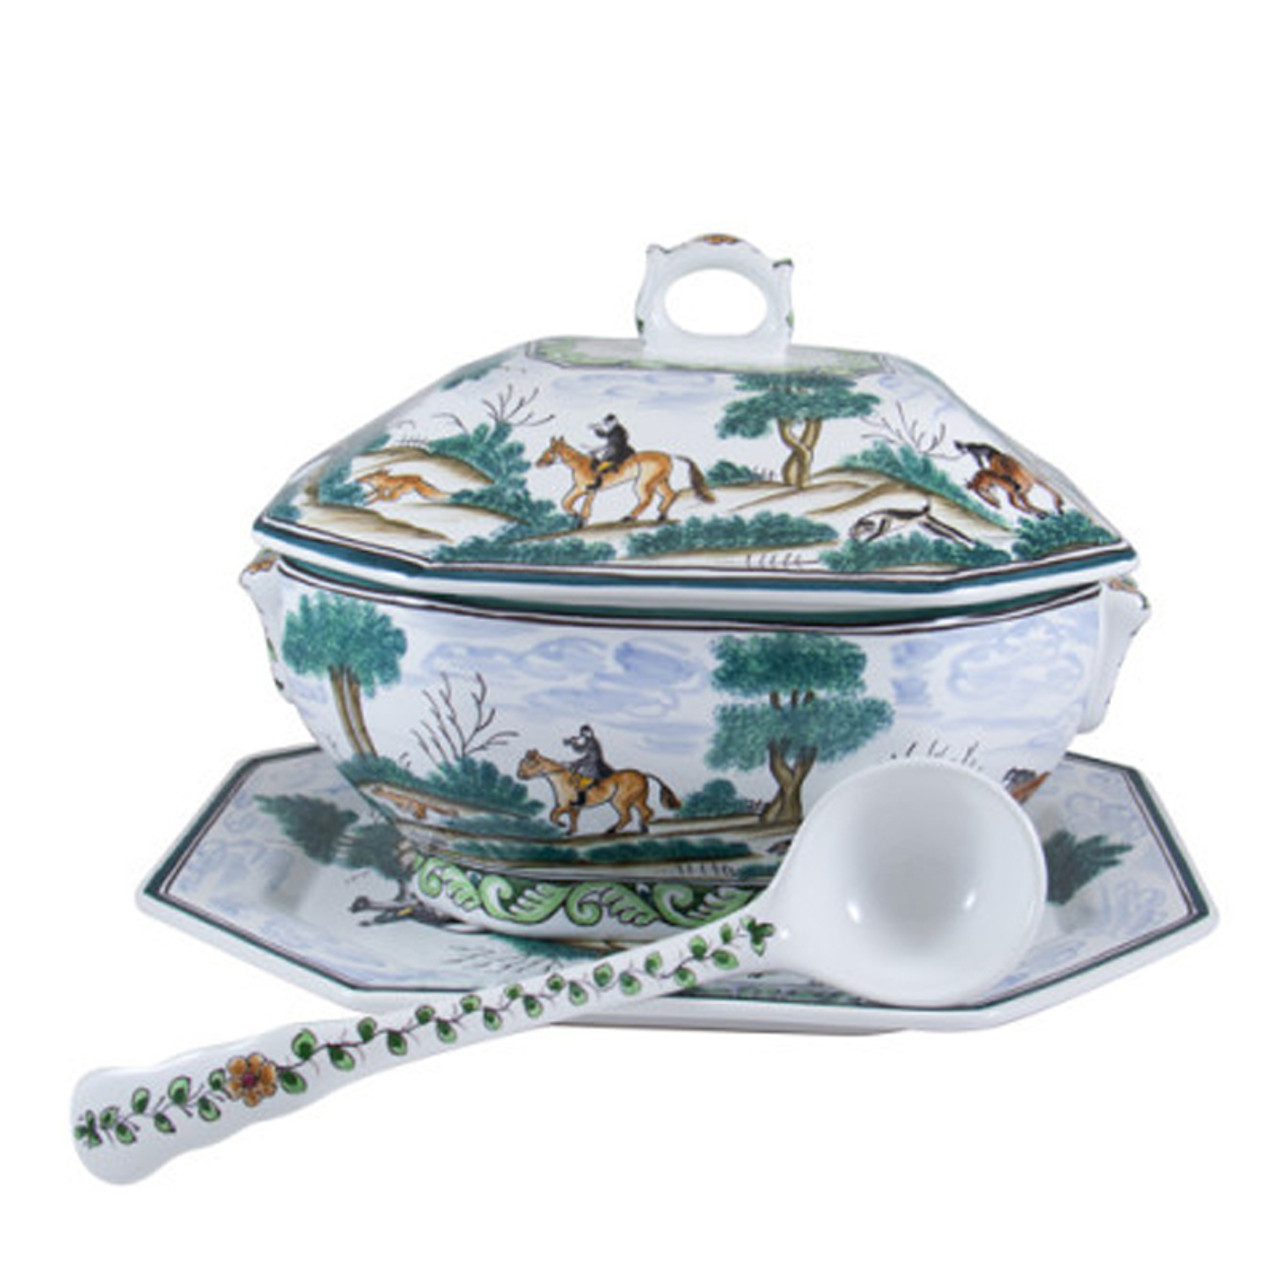 C.E. Corey Century Hunt Octagonal Soup Tureen Set A truly magnificent and whimsical fox hunt scene  sc 1 st  Plum Pudding & C.E. Corey Century Hunt Tureen Set